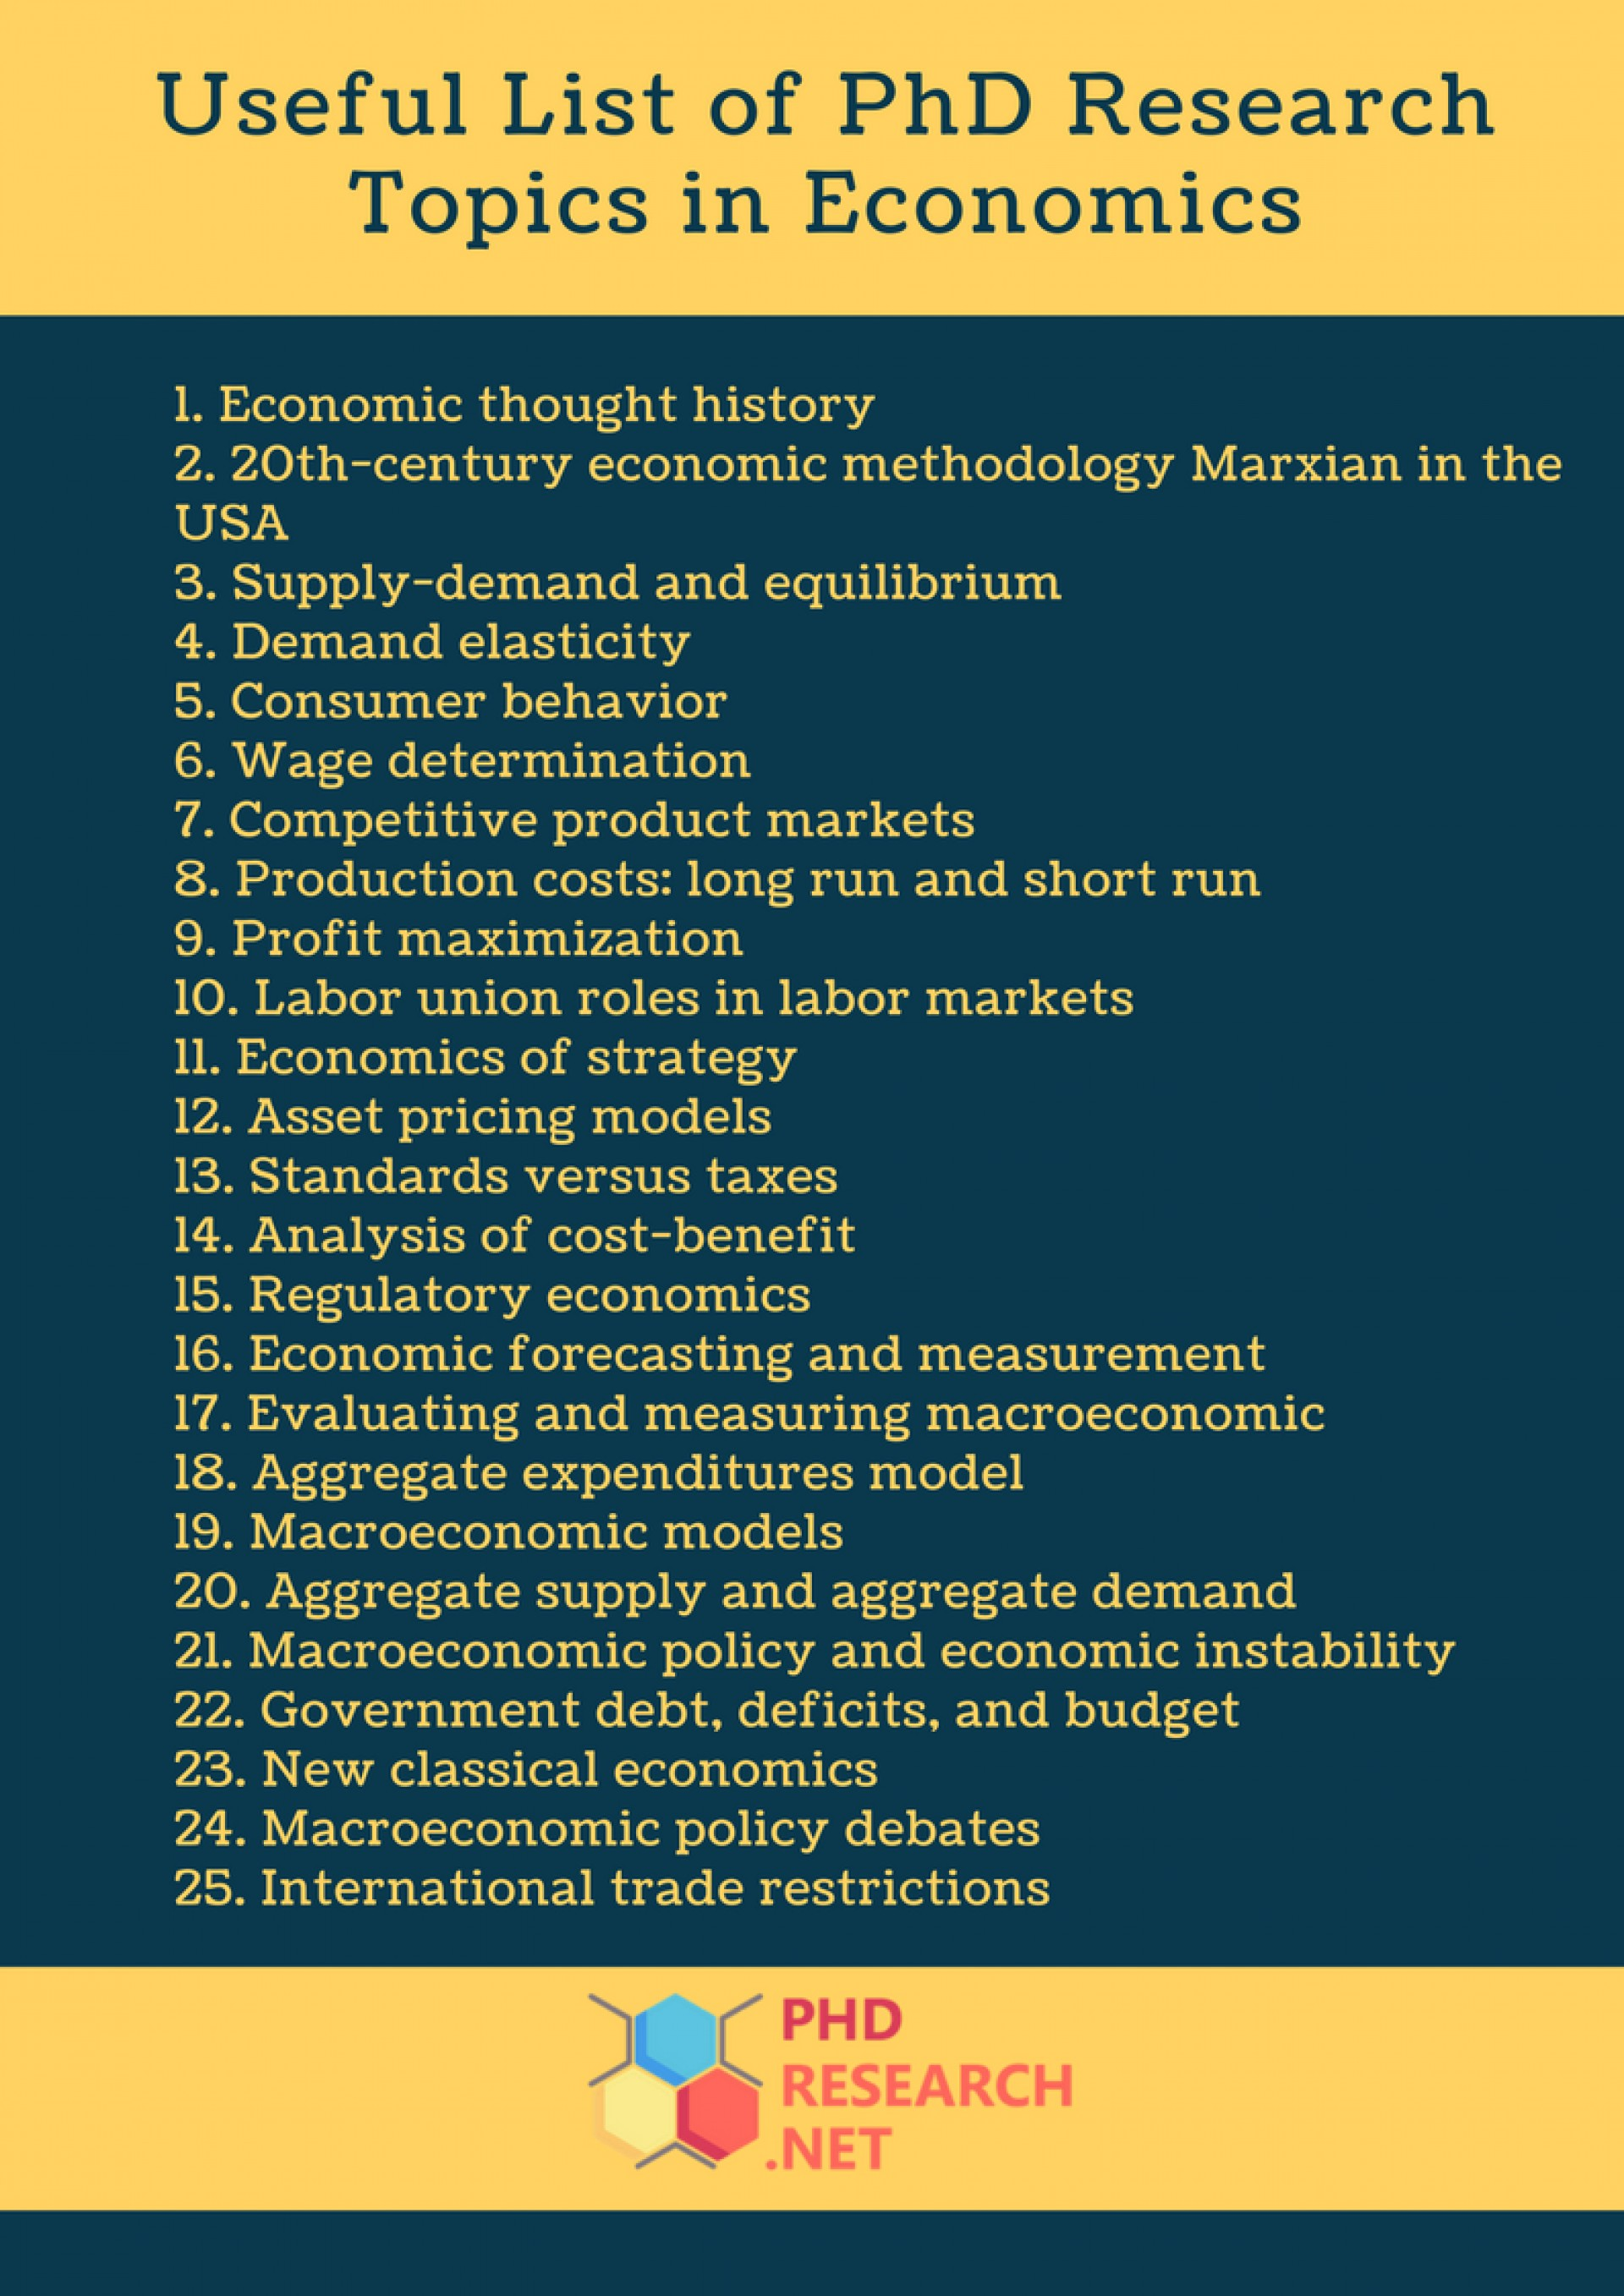 003 Best Topic For Research Paper In Economics Useful List Of Phd Stirring 1920